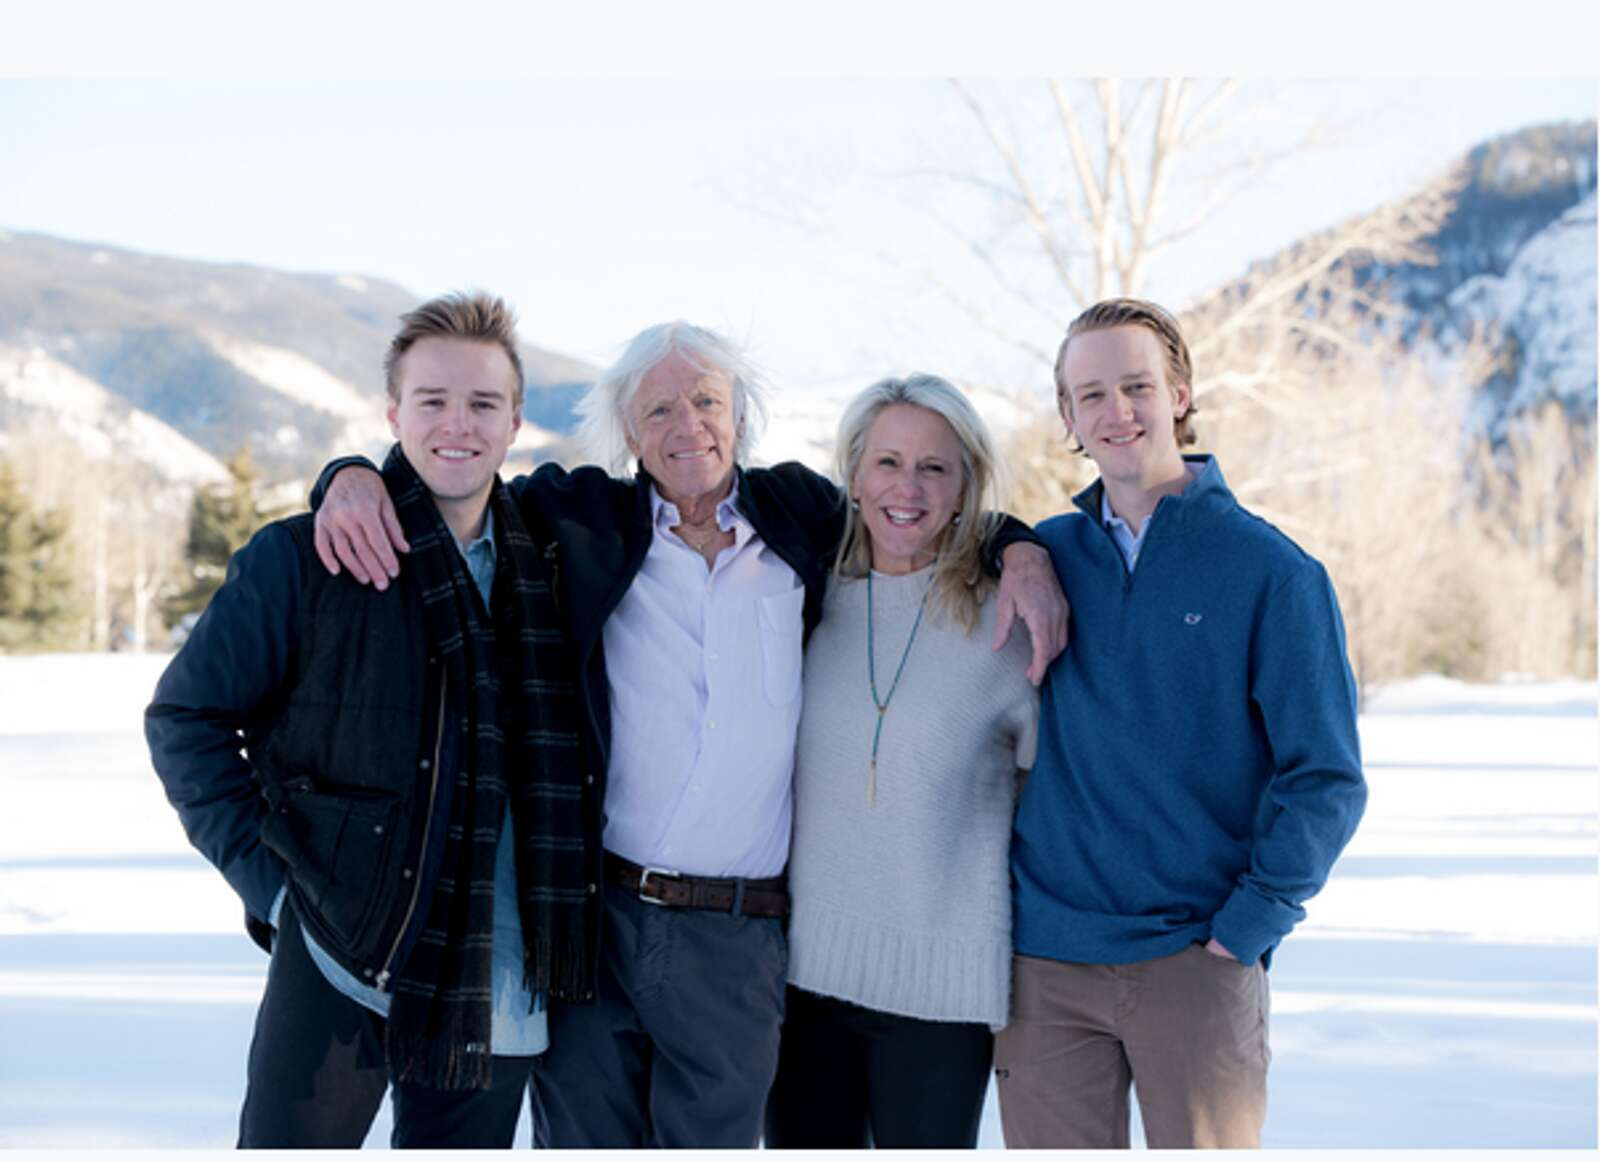 Art Daily with his wife, Allison, and their two sons, Burke and Rider. (Michele Cardamone/Special to The Aspen Times).